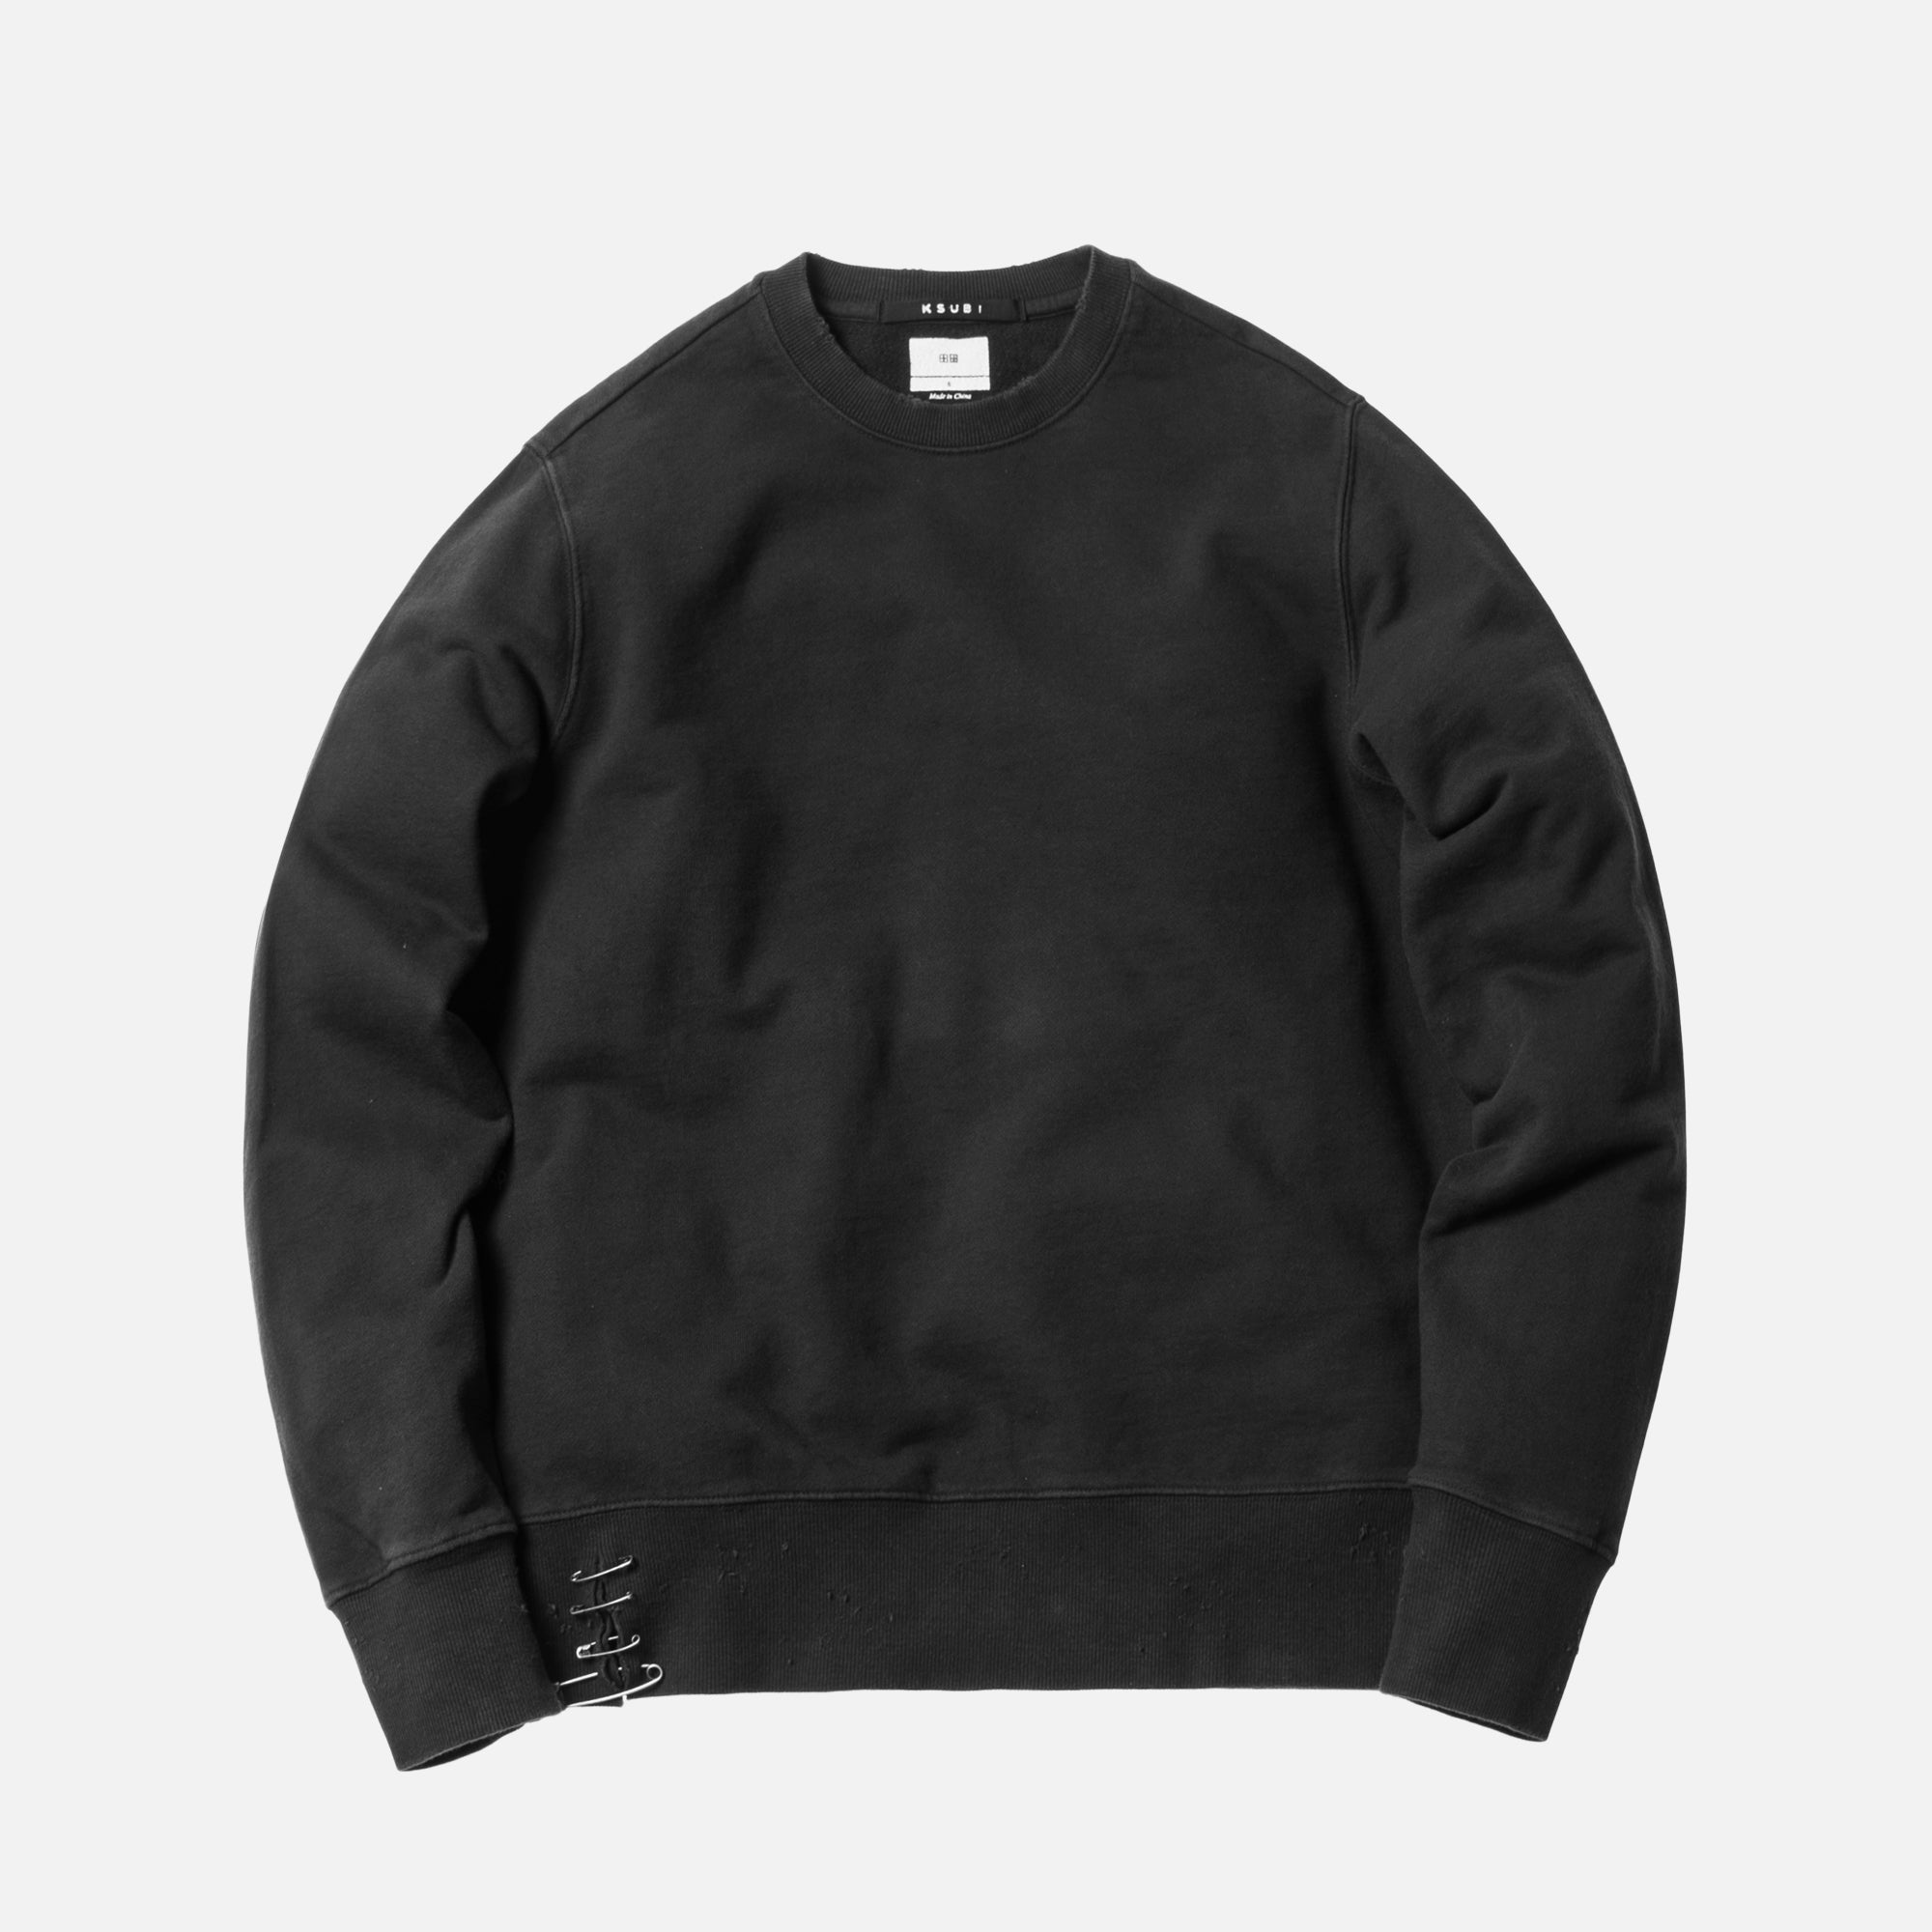 Ksubi Pins Back to Black Crewneck - Black